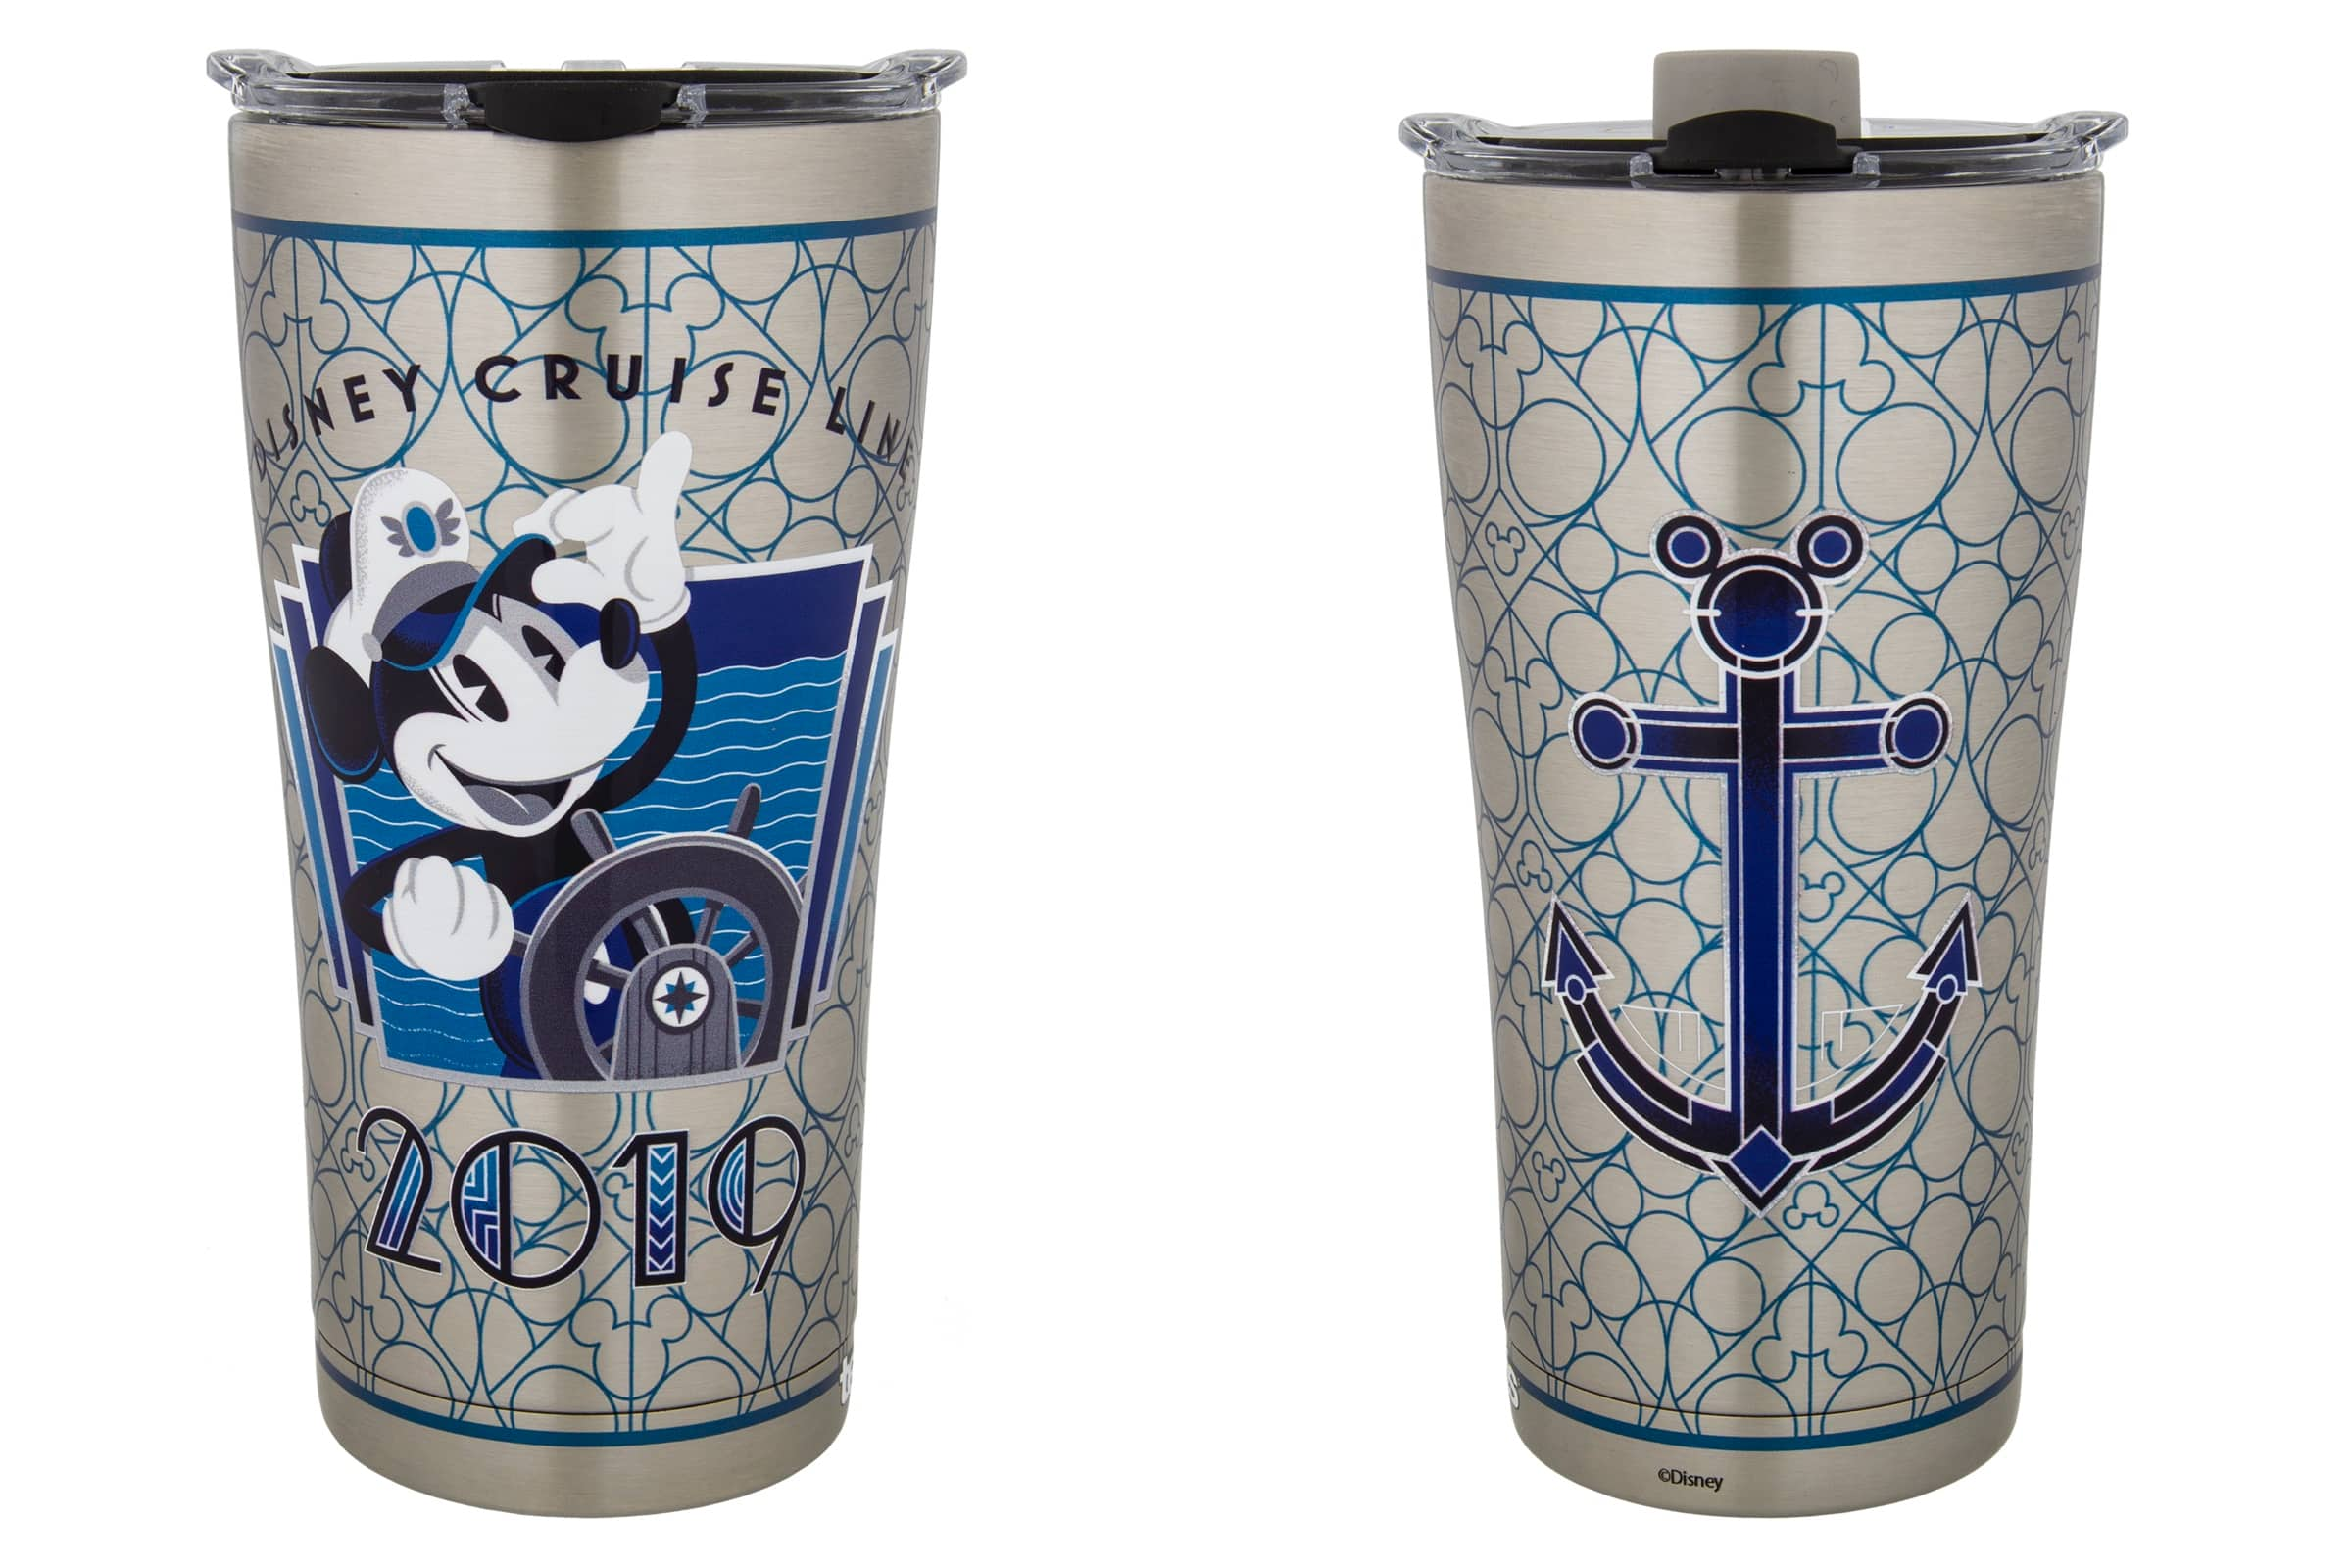 2019 Disney Cruise Line Stainless Steel Tervis Tumbler